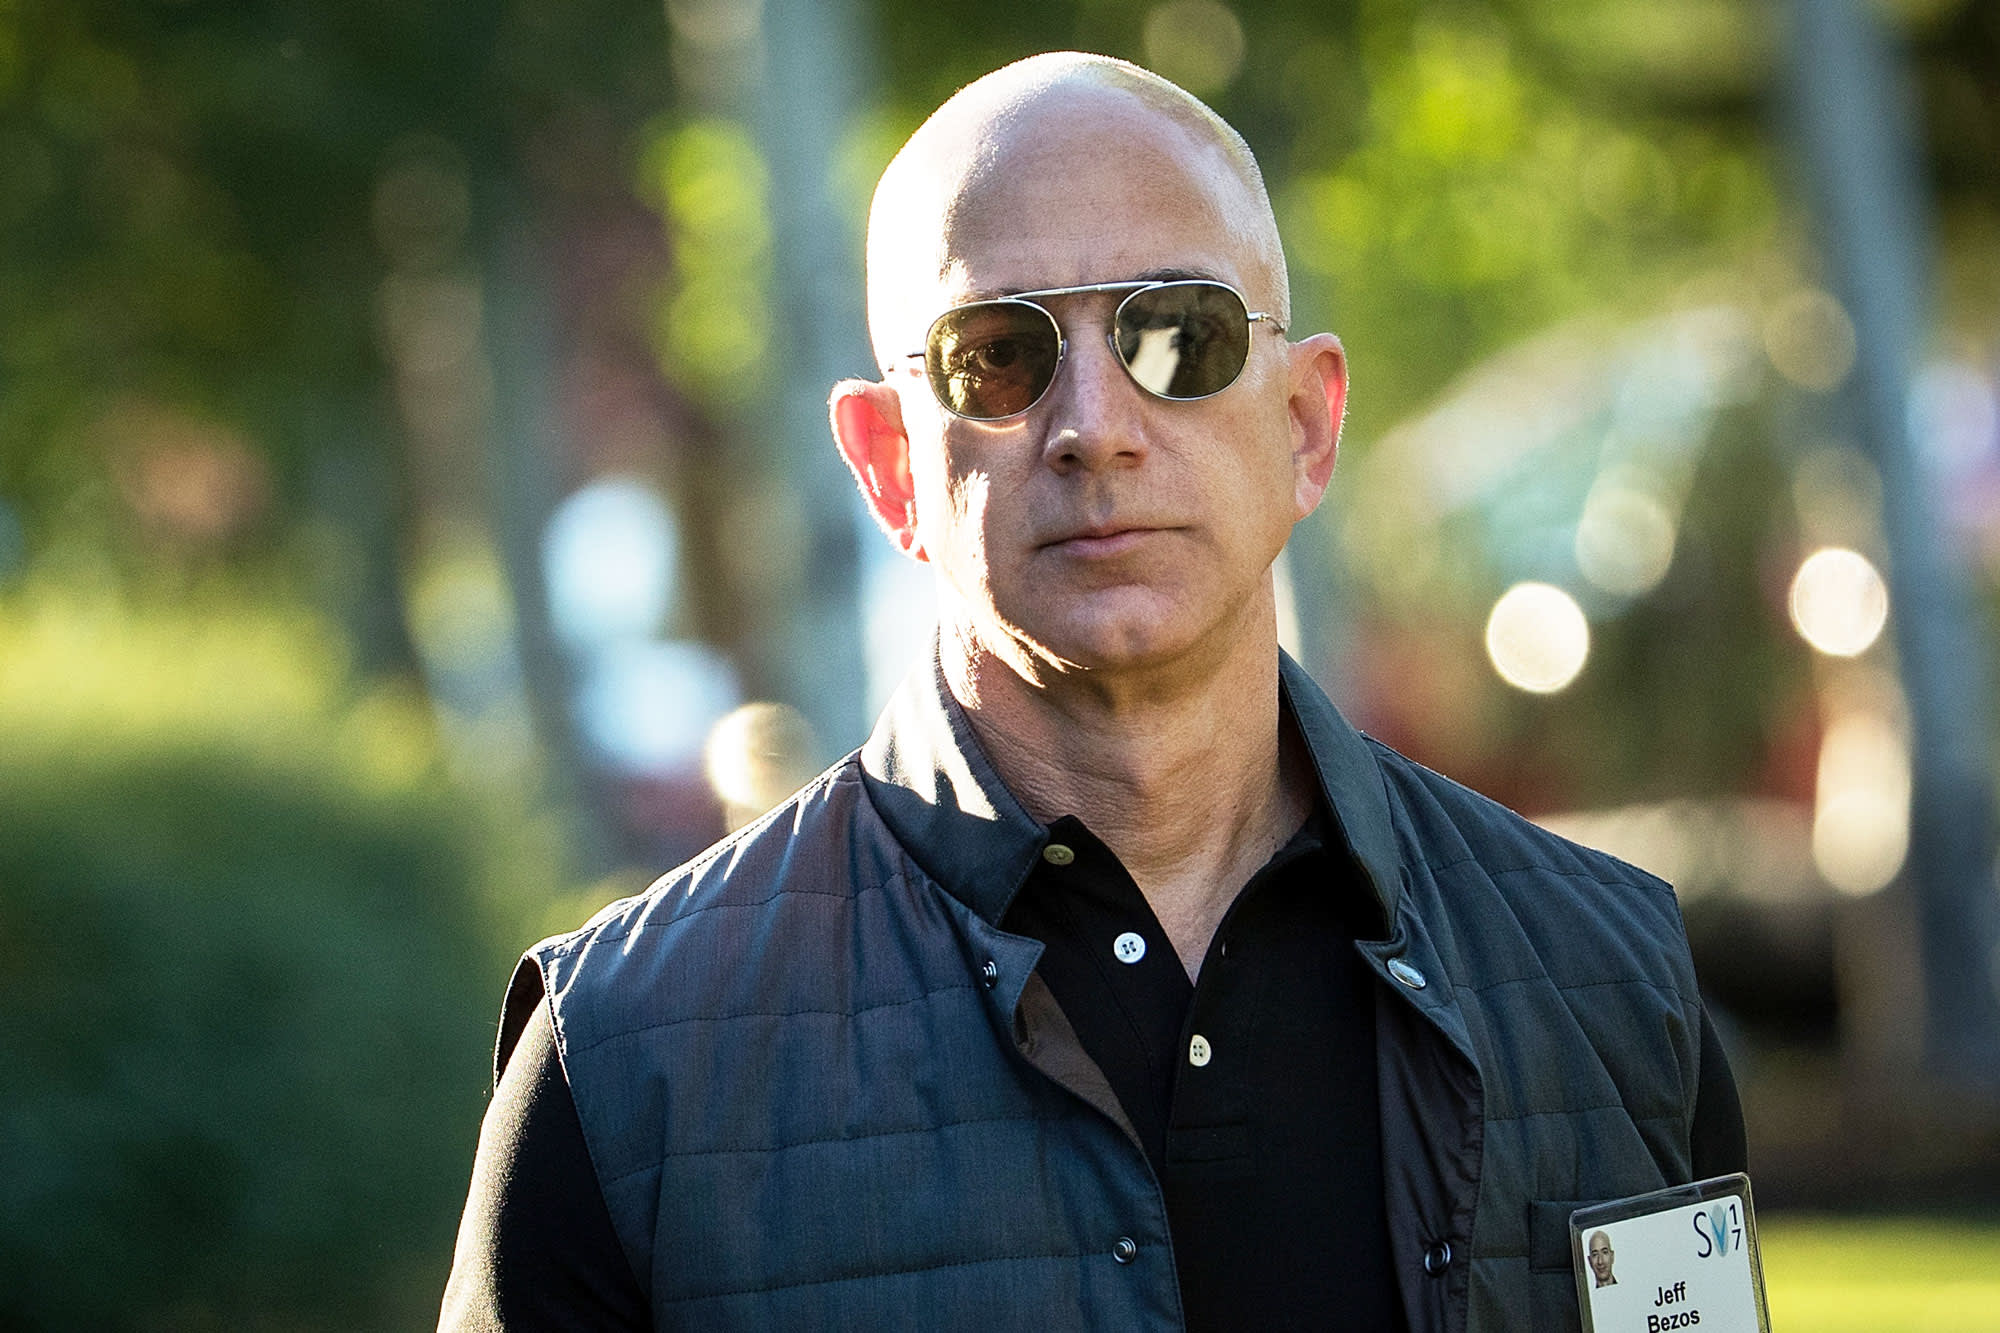 Bezos loses $7 billion overnight, $18 billion in a month